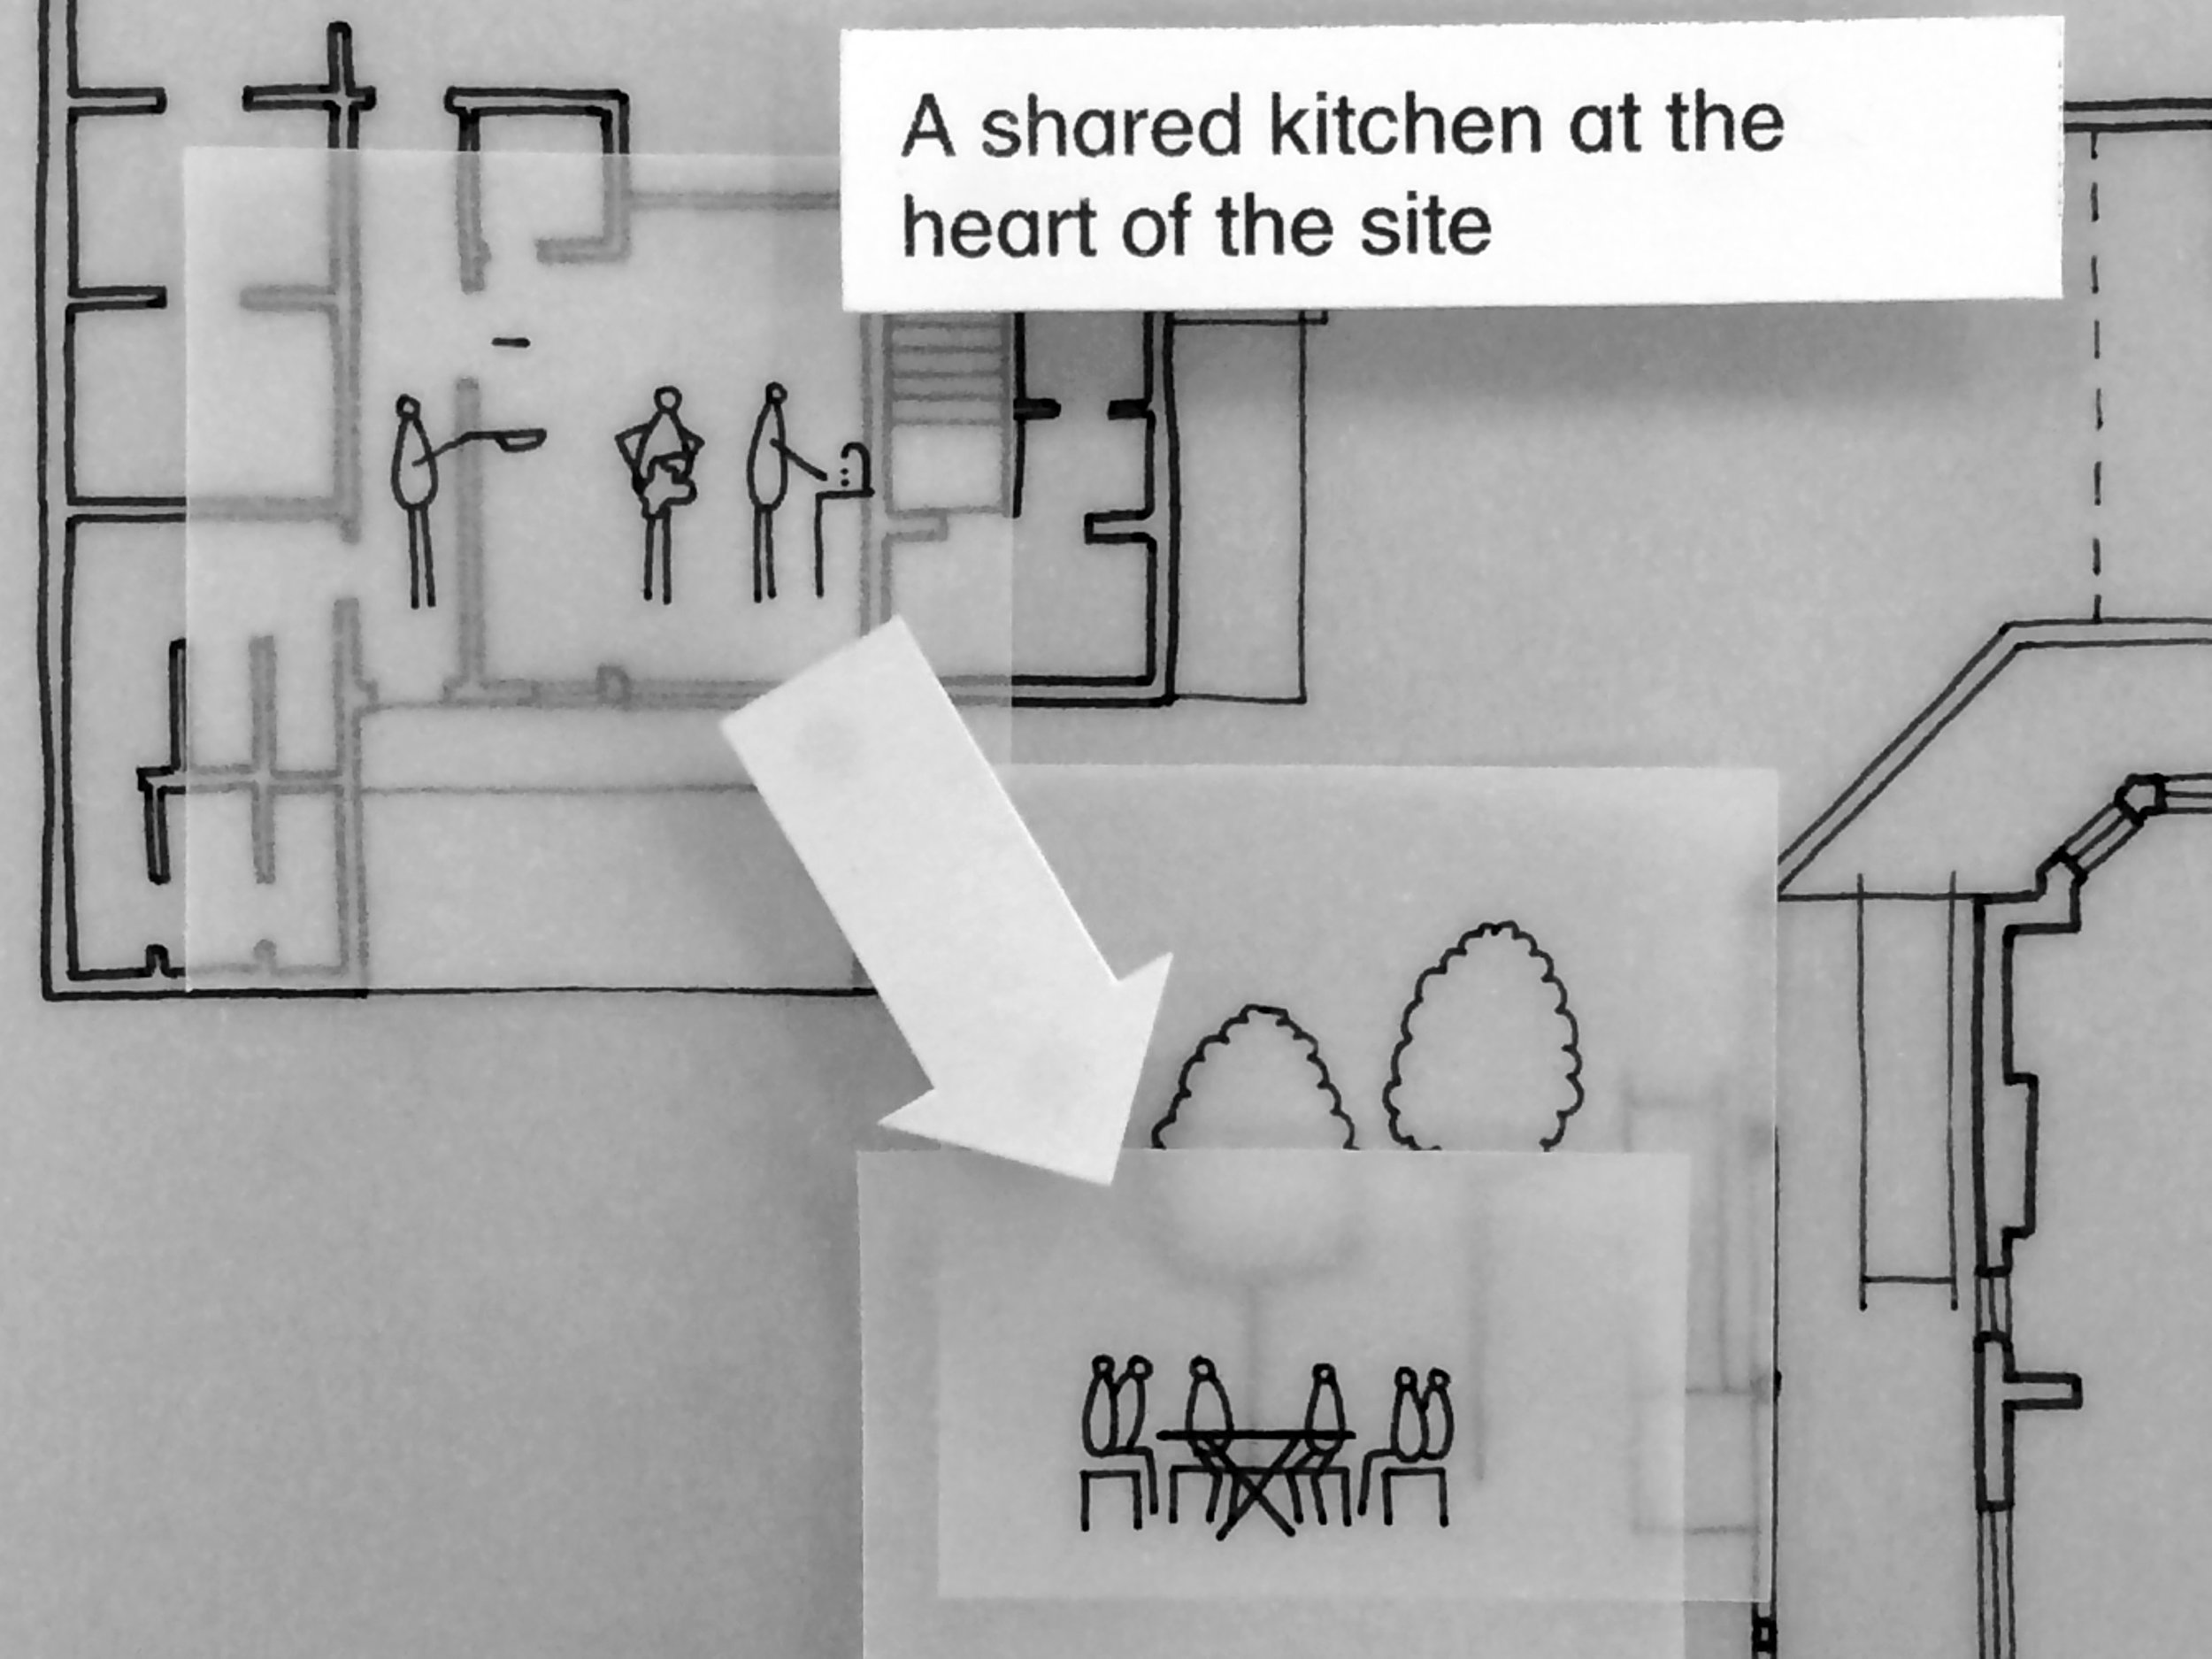 A shared kitchen at the heart of the site.JPG